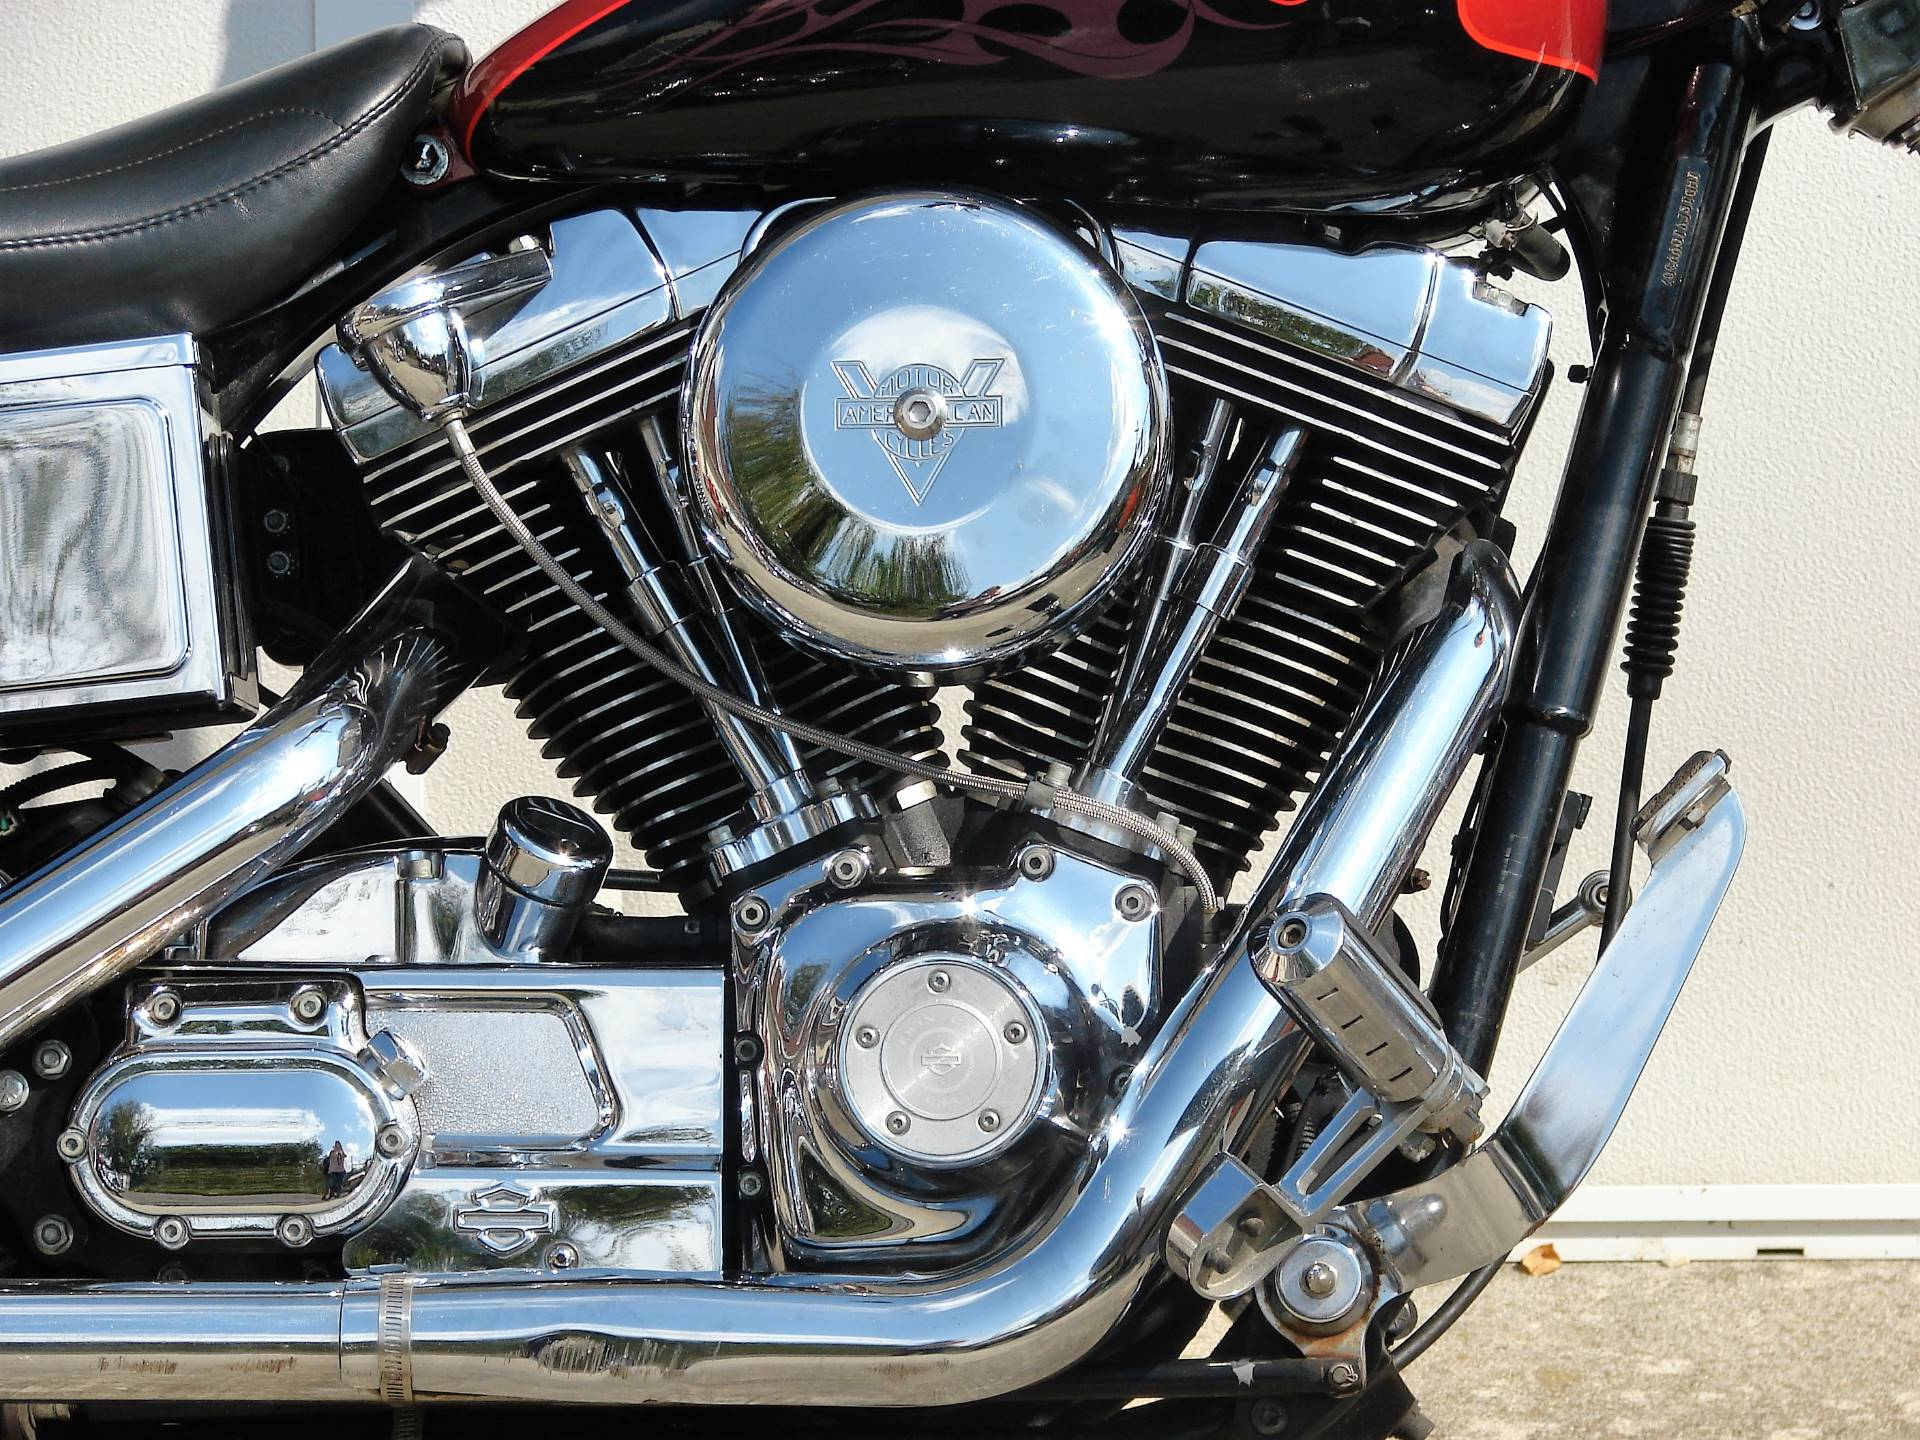 2000 Harley-Davidson FXDWG Dyna Wide Glide in Williamstown, New Jersey - Photo 3